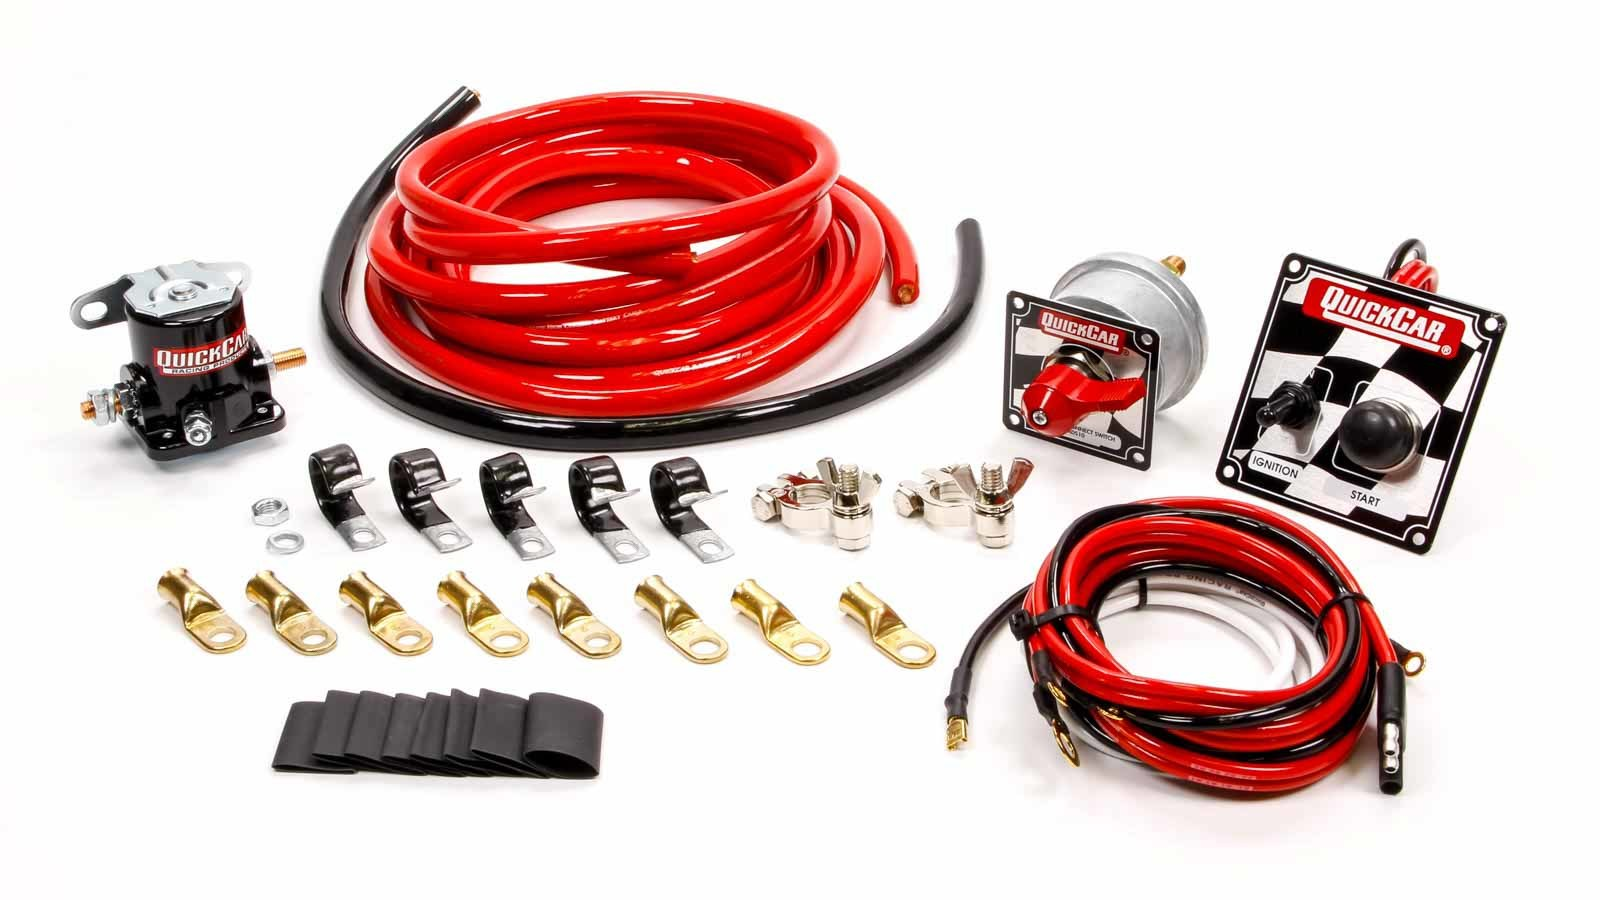 QuickCar 50-235 Wiring Kit, Ignition / Battery, Battery Cable / Battery Disconnect / Solenoid / Switch Panel / Terminals, 4 Gauge, Kit